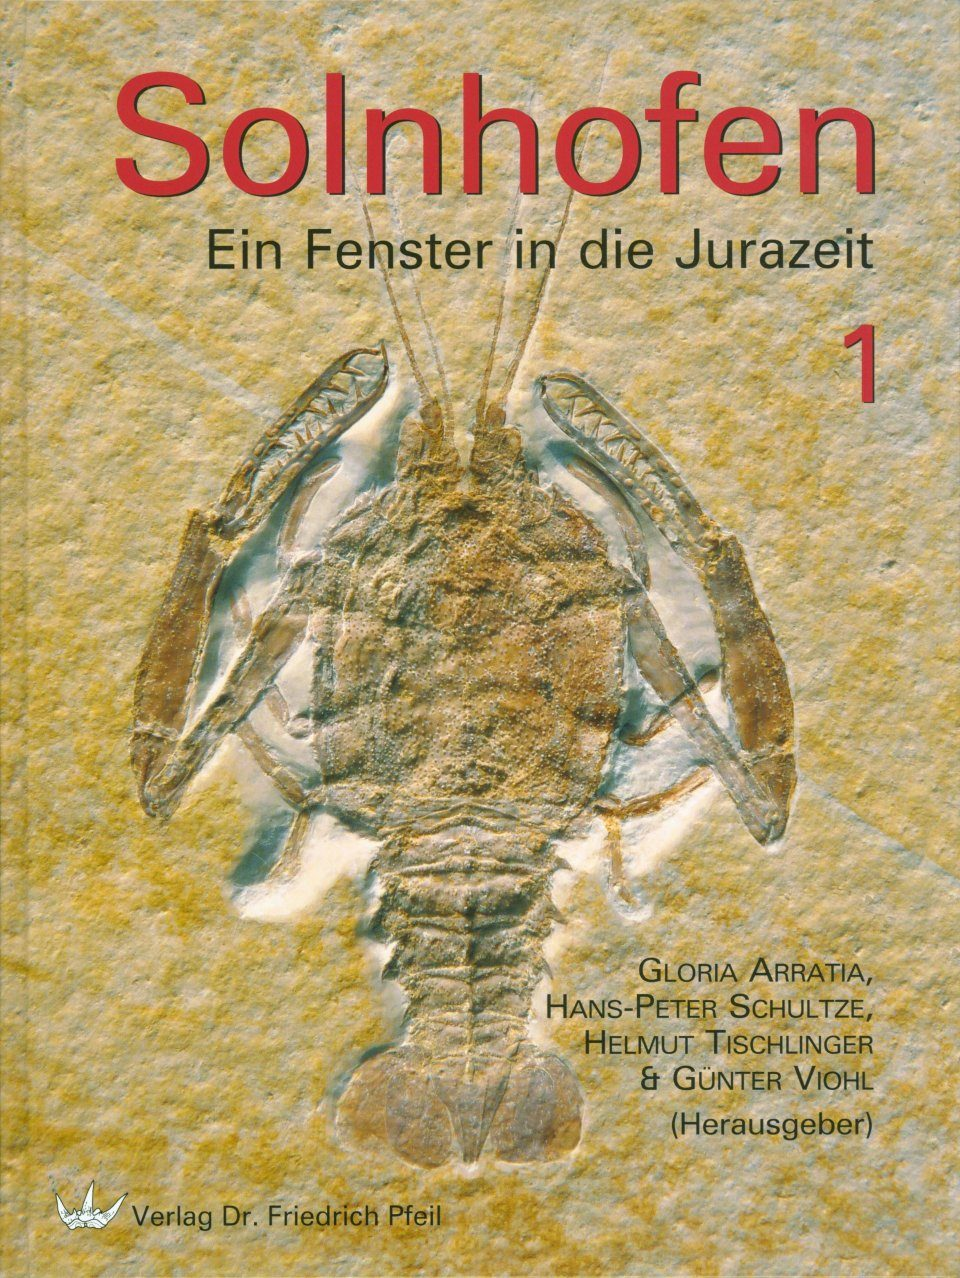 Solnhofen: Ein Fenster in die Jurazeit [Solnhofen: A Window into the Jurassic] (2-Volume Set)